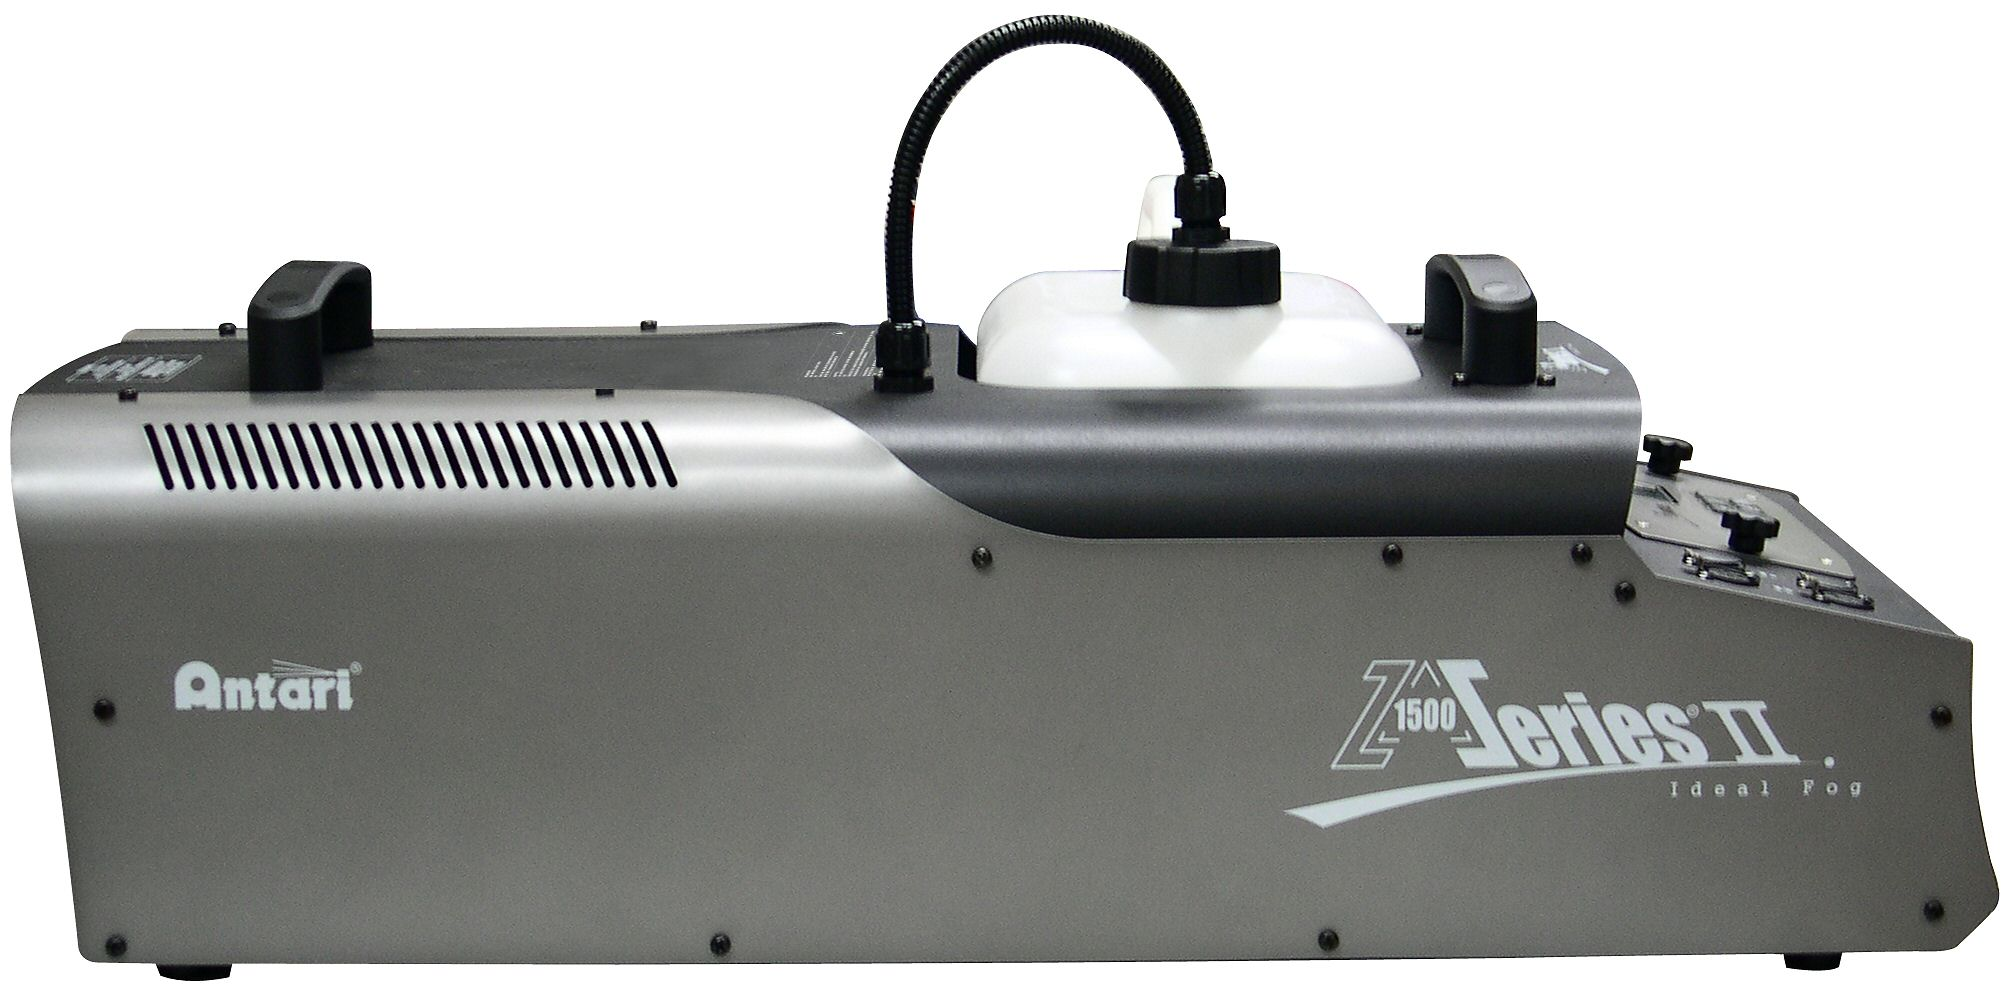 ANTARI Z-1500 II Fog Machine